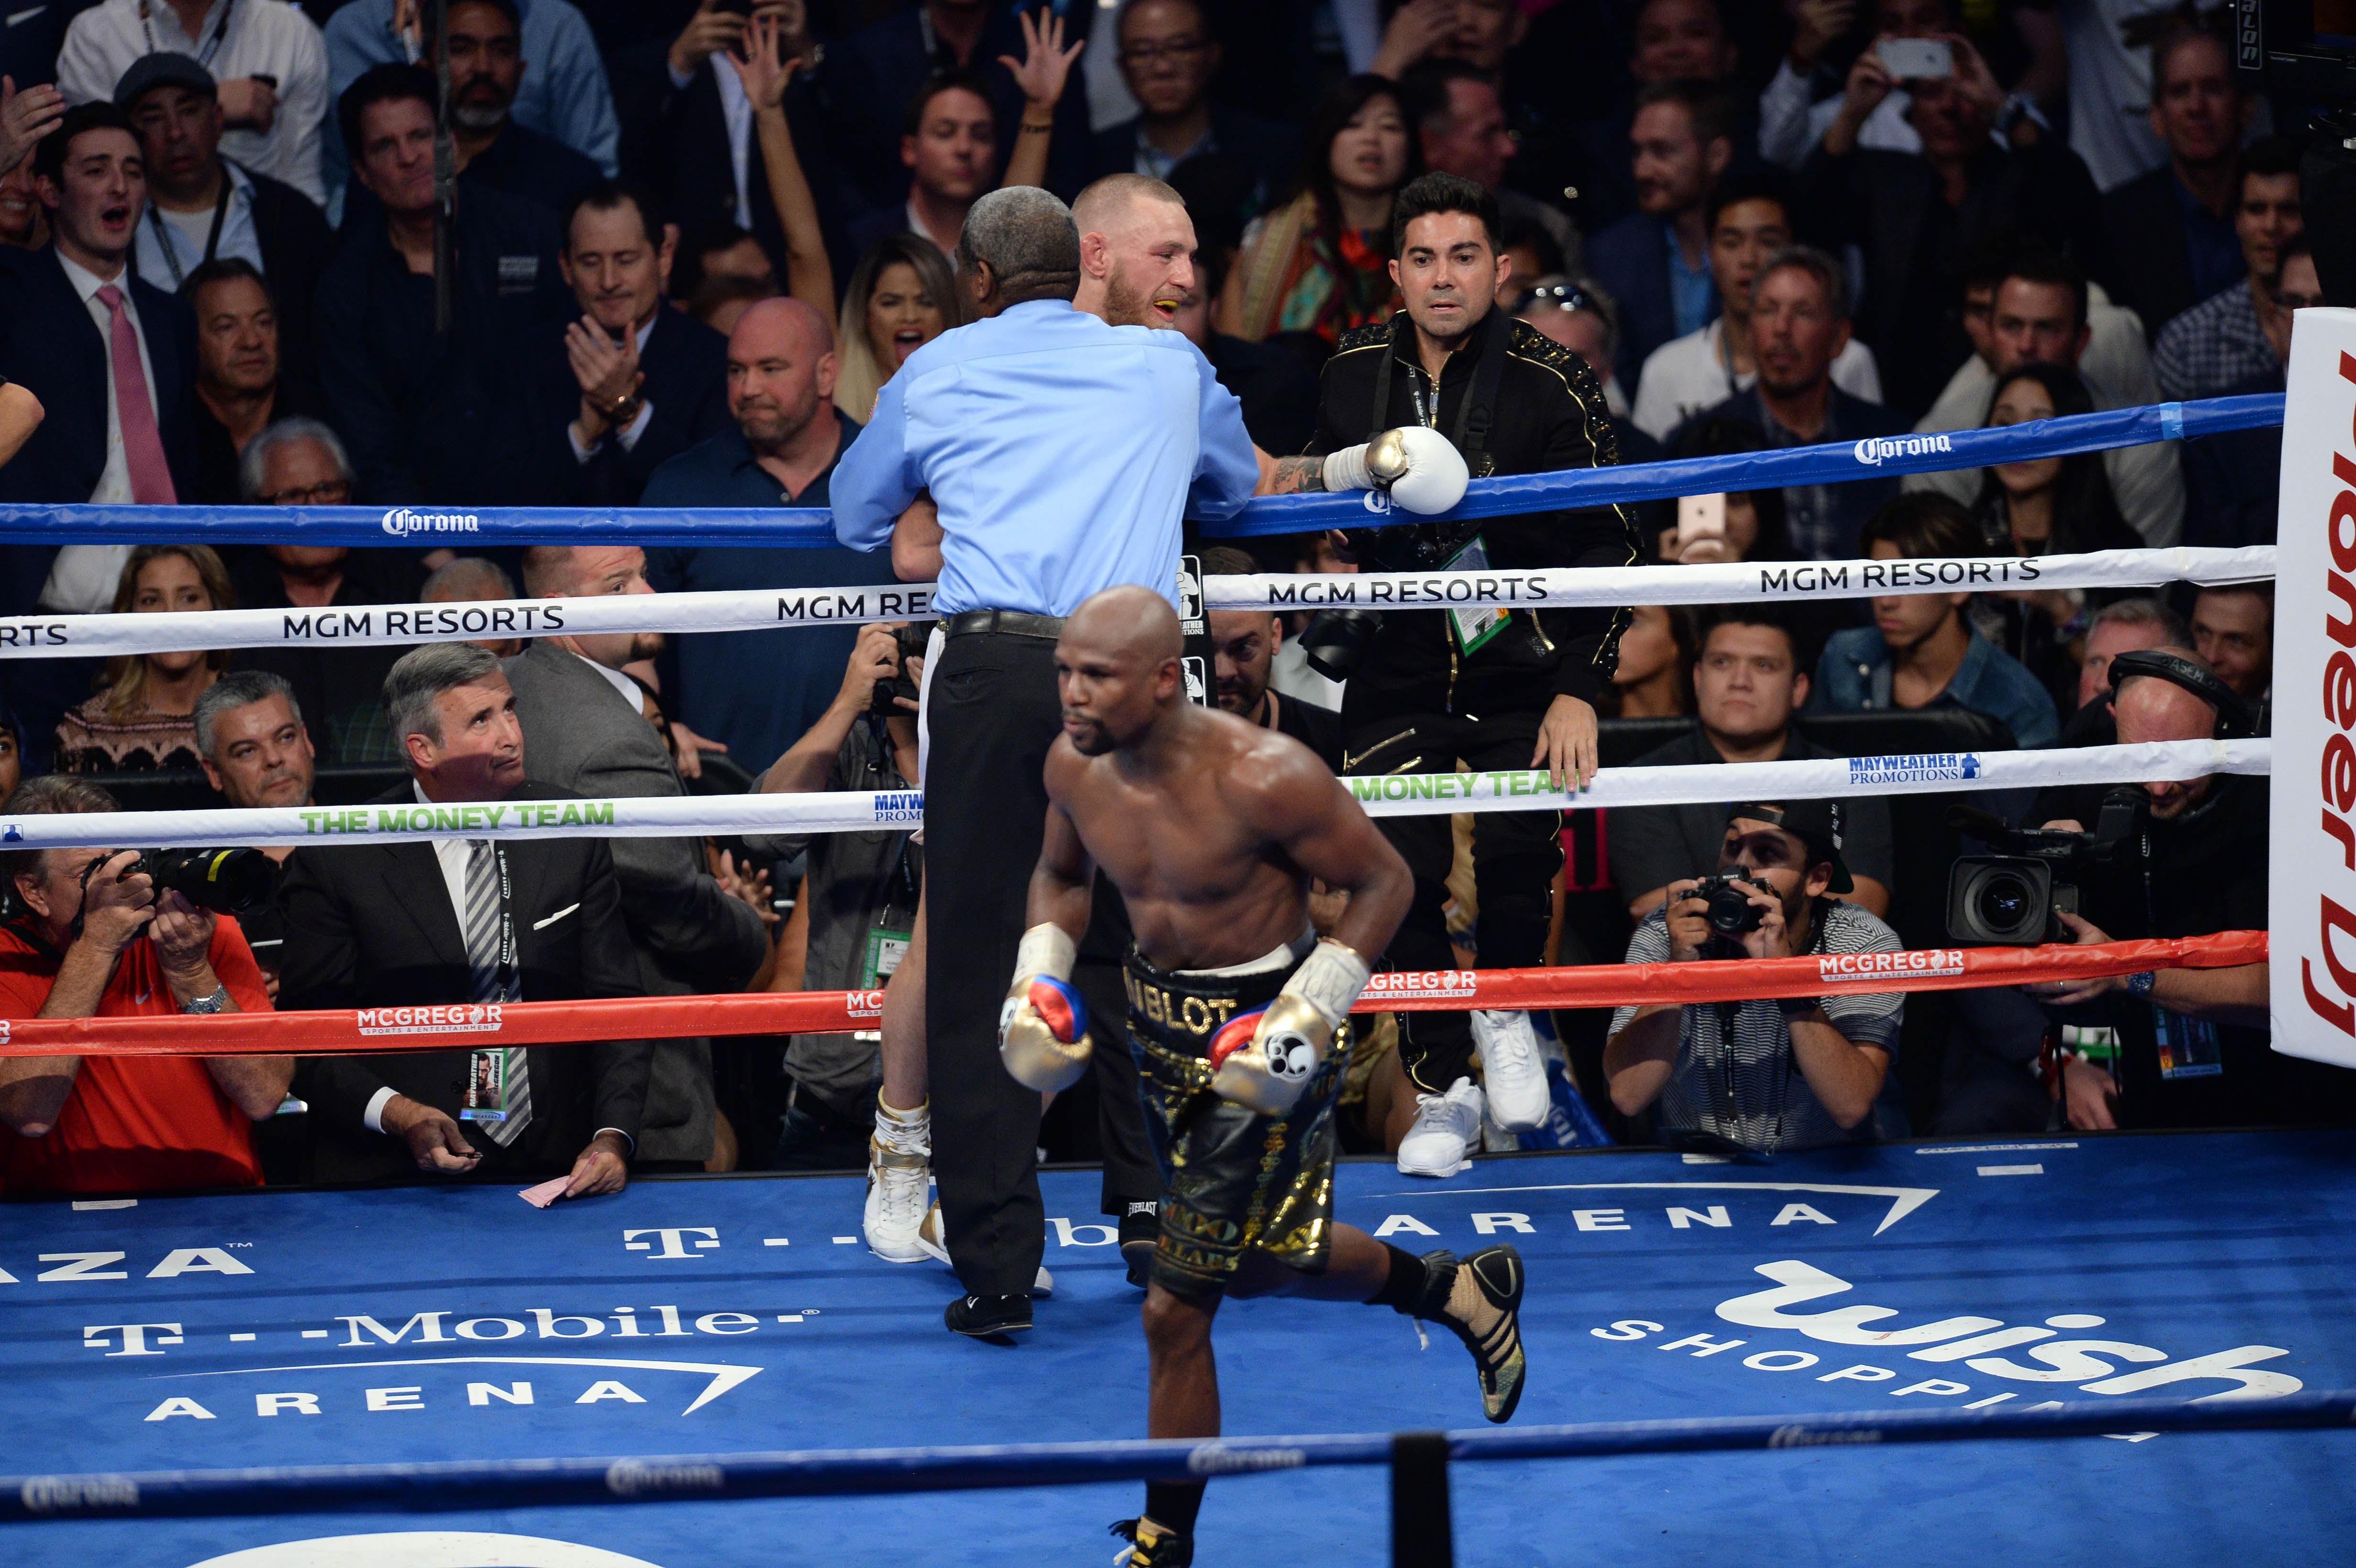 Floyd Mayweather stopped Conor McGregor in the 11th round of their boxing match in Las Vegas last August